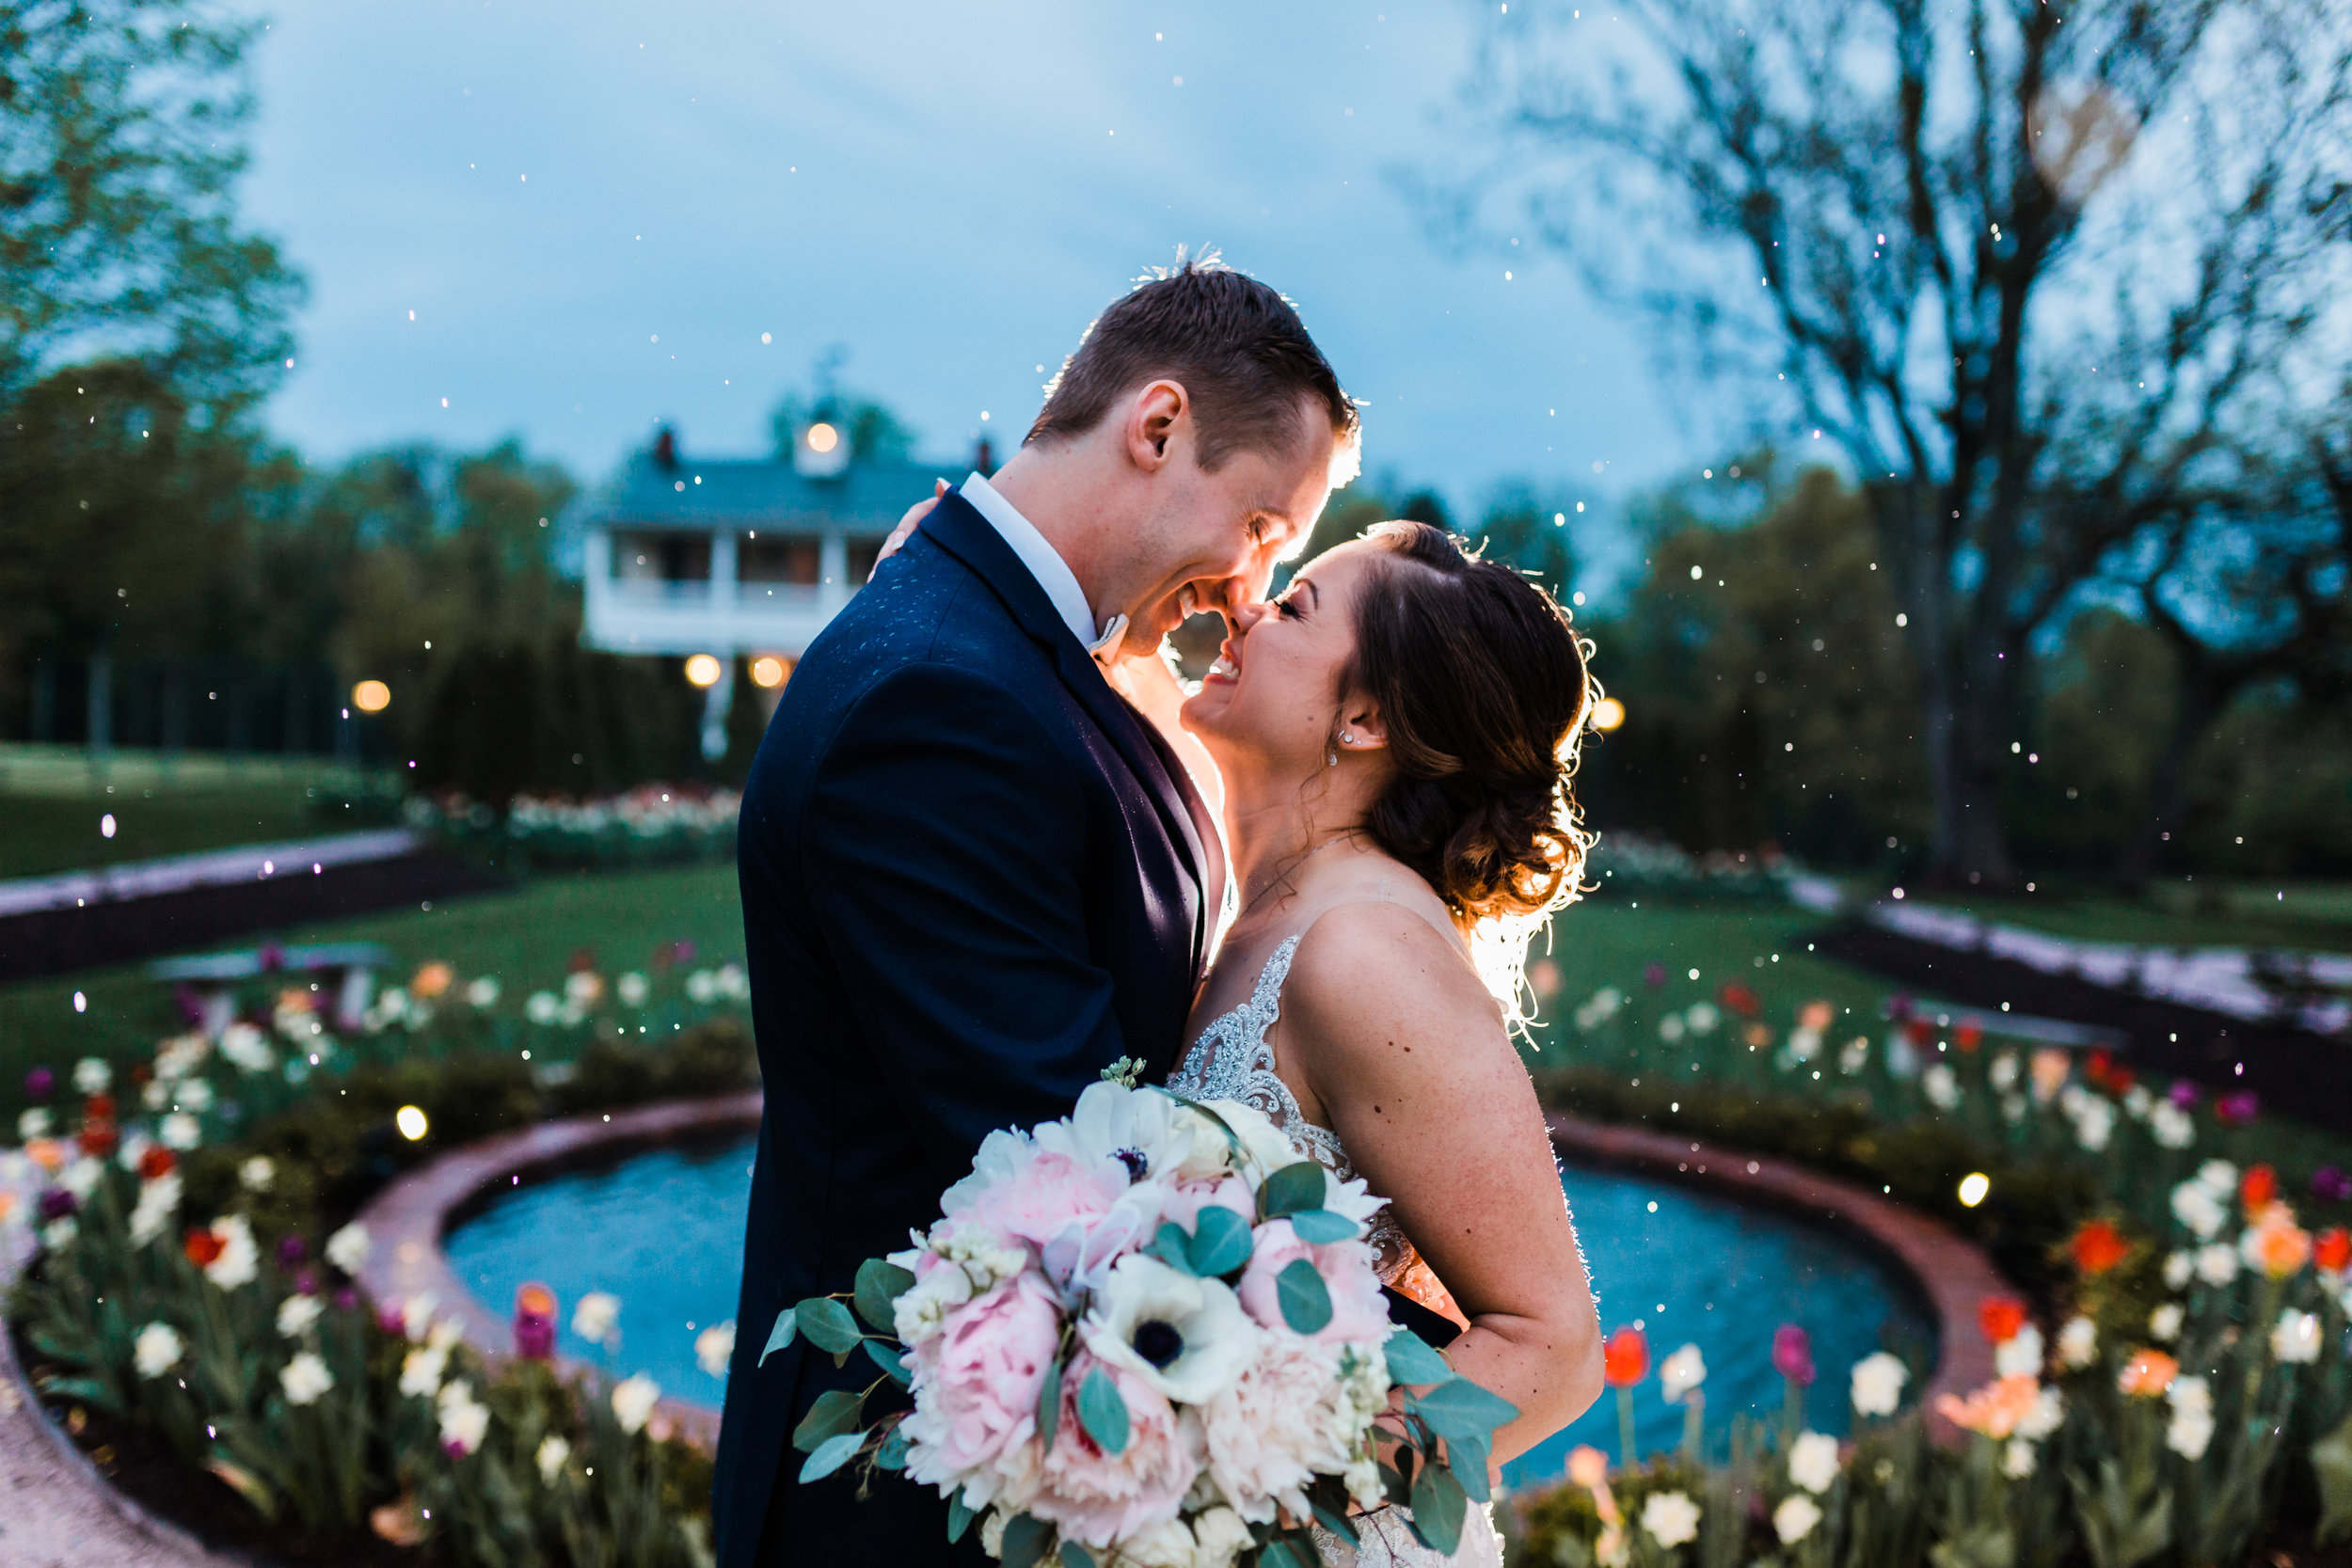 bride and groom laughing in the rain at md wedding - photography